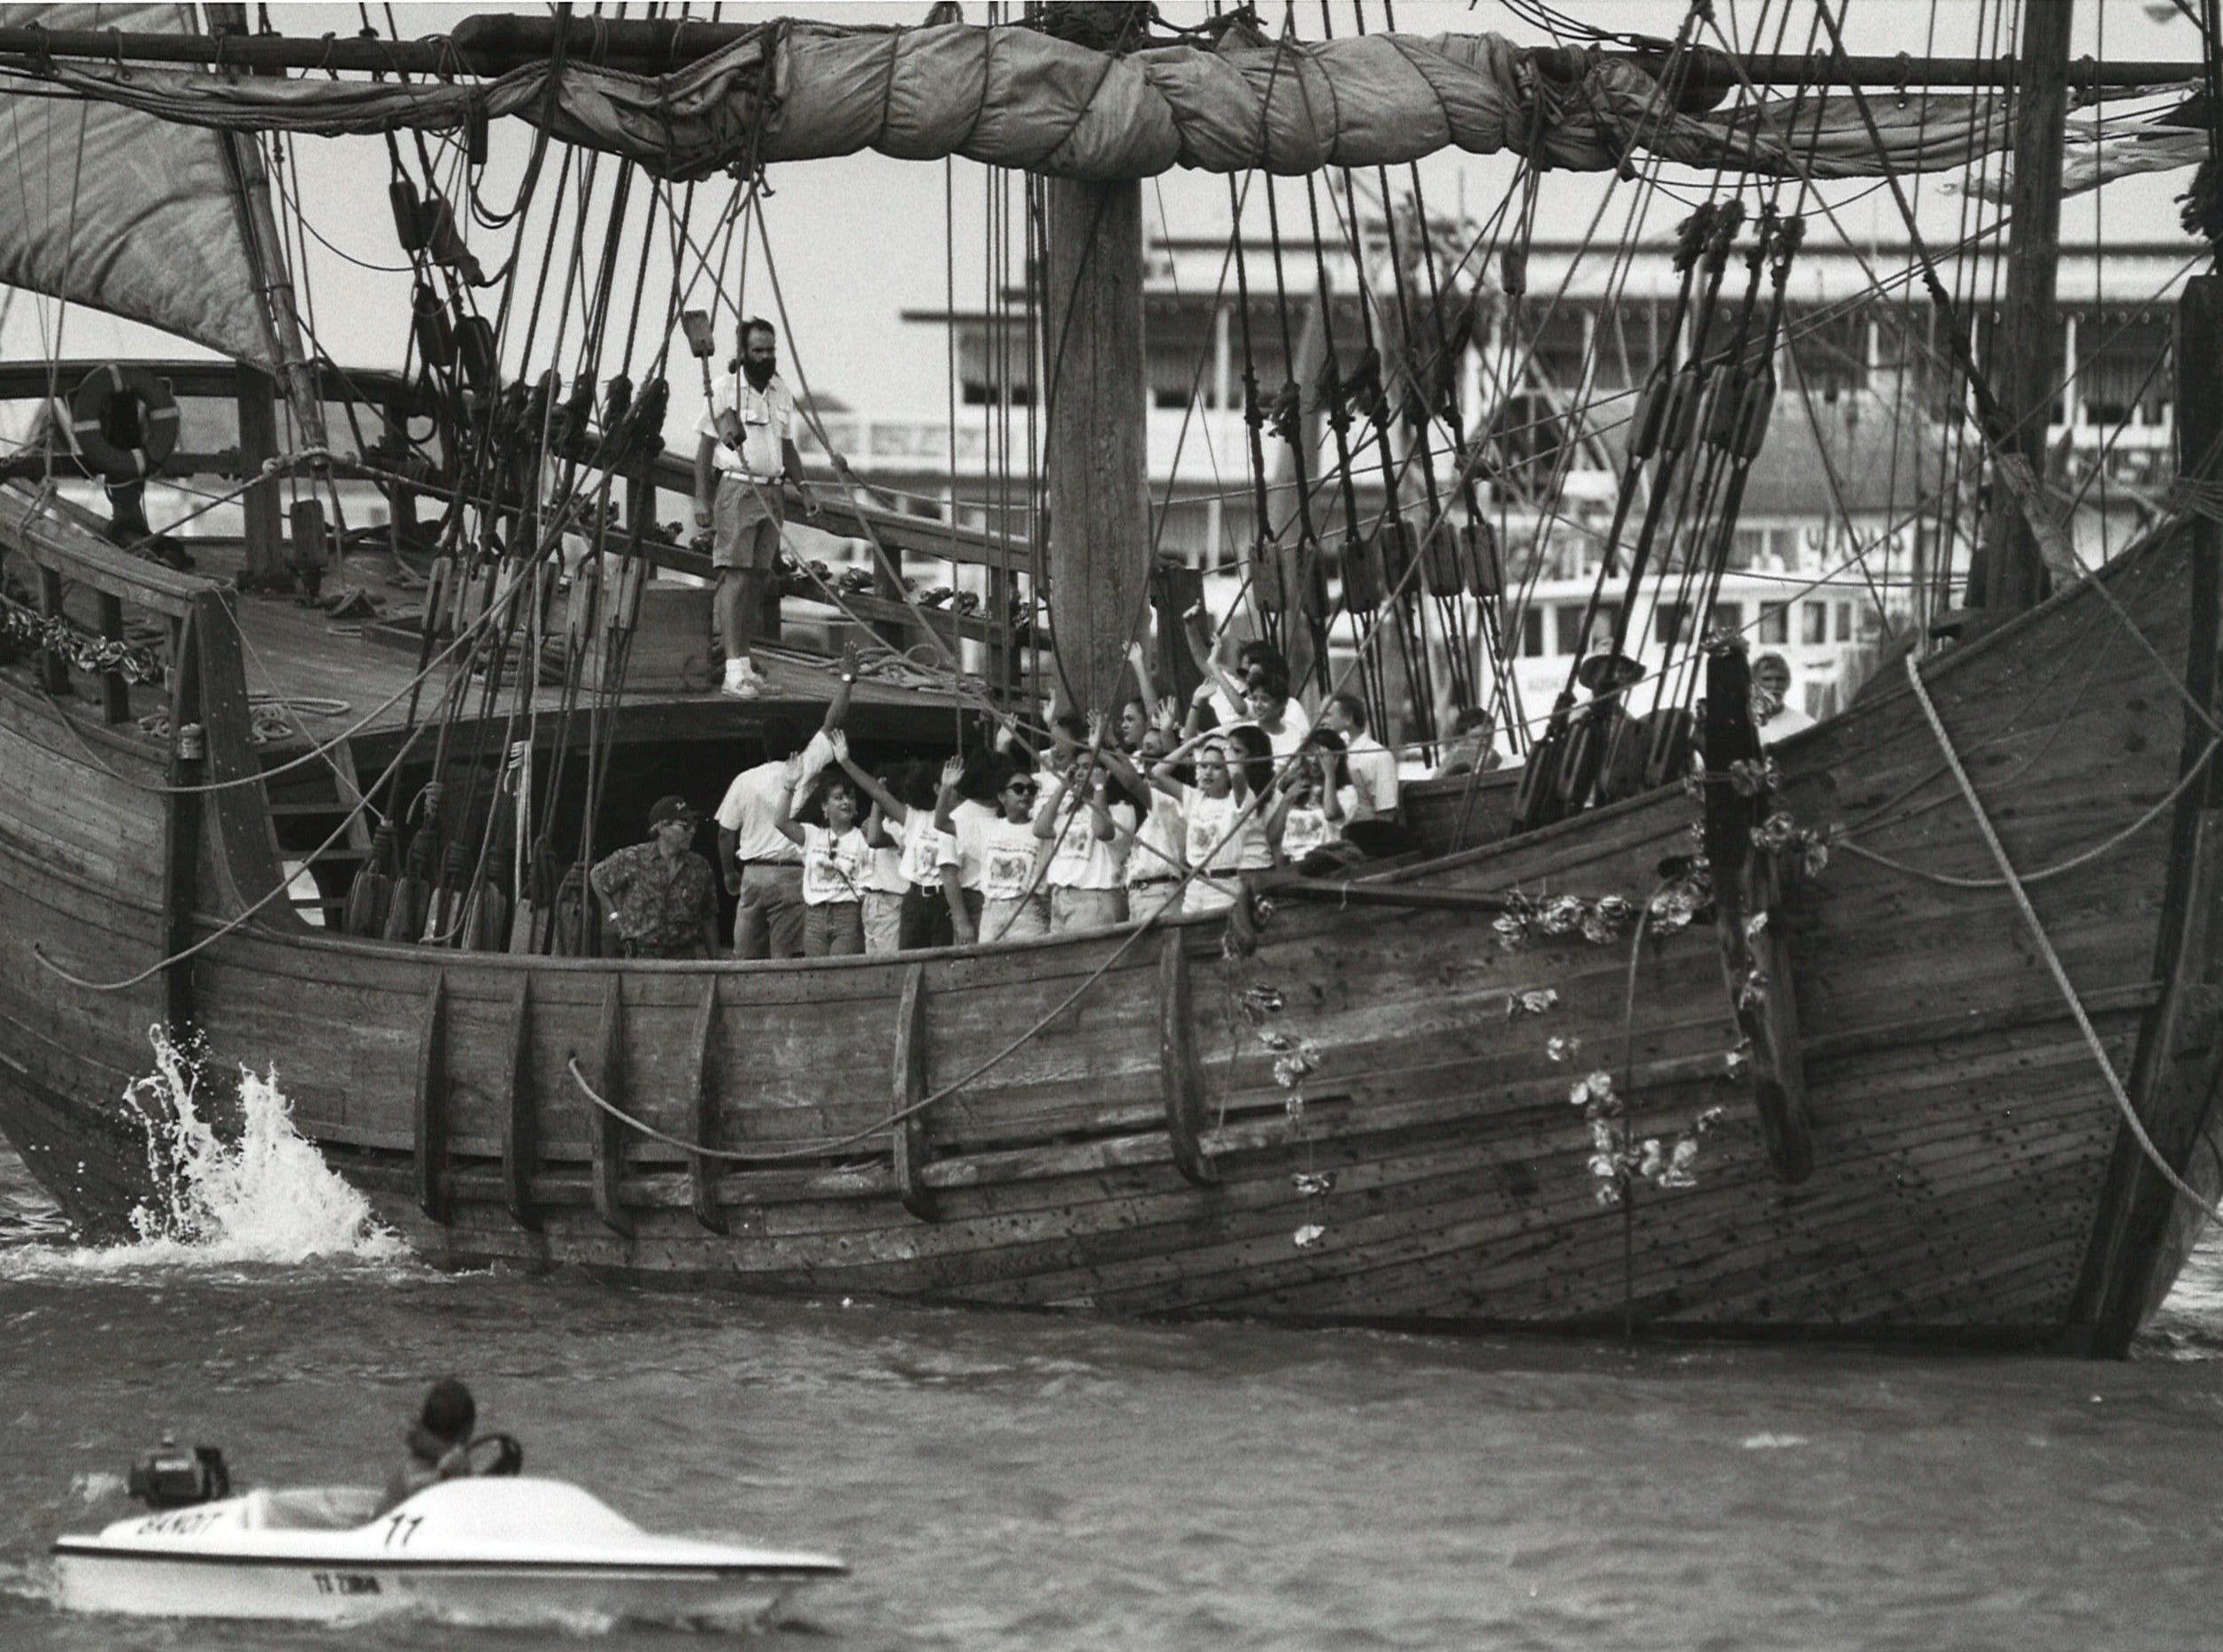 The crew of the Niña struggle to bring the ship carrying Feria de las Flores contestants into the marina between the Lawrence Street T-head and the Peoples Street T-head on Aug. 9, 1994. High winds made manuevering the ship difficult.